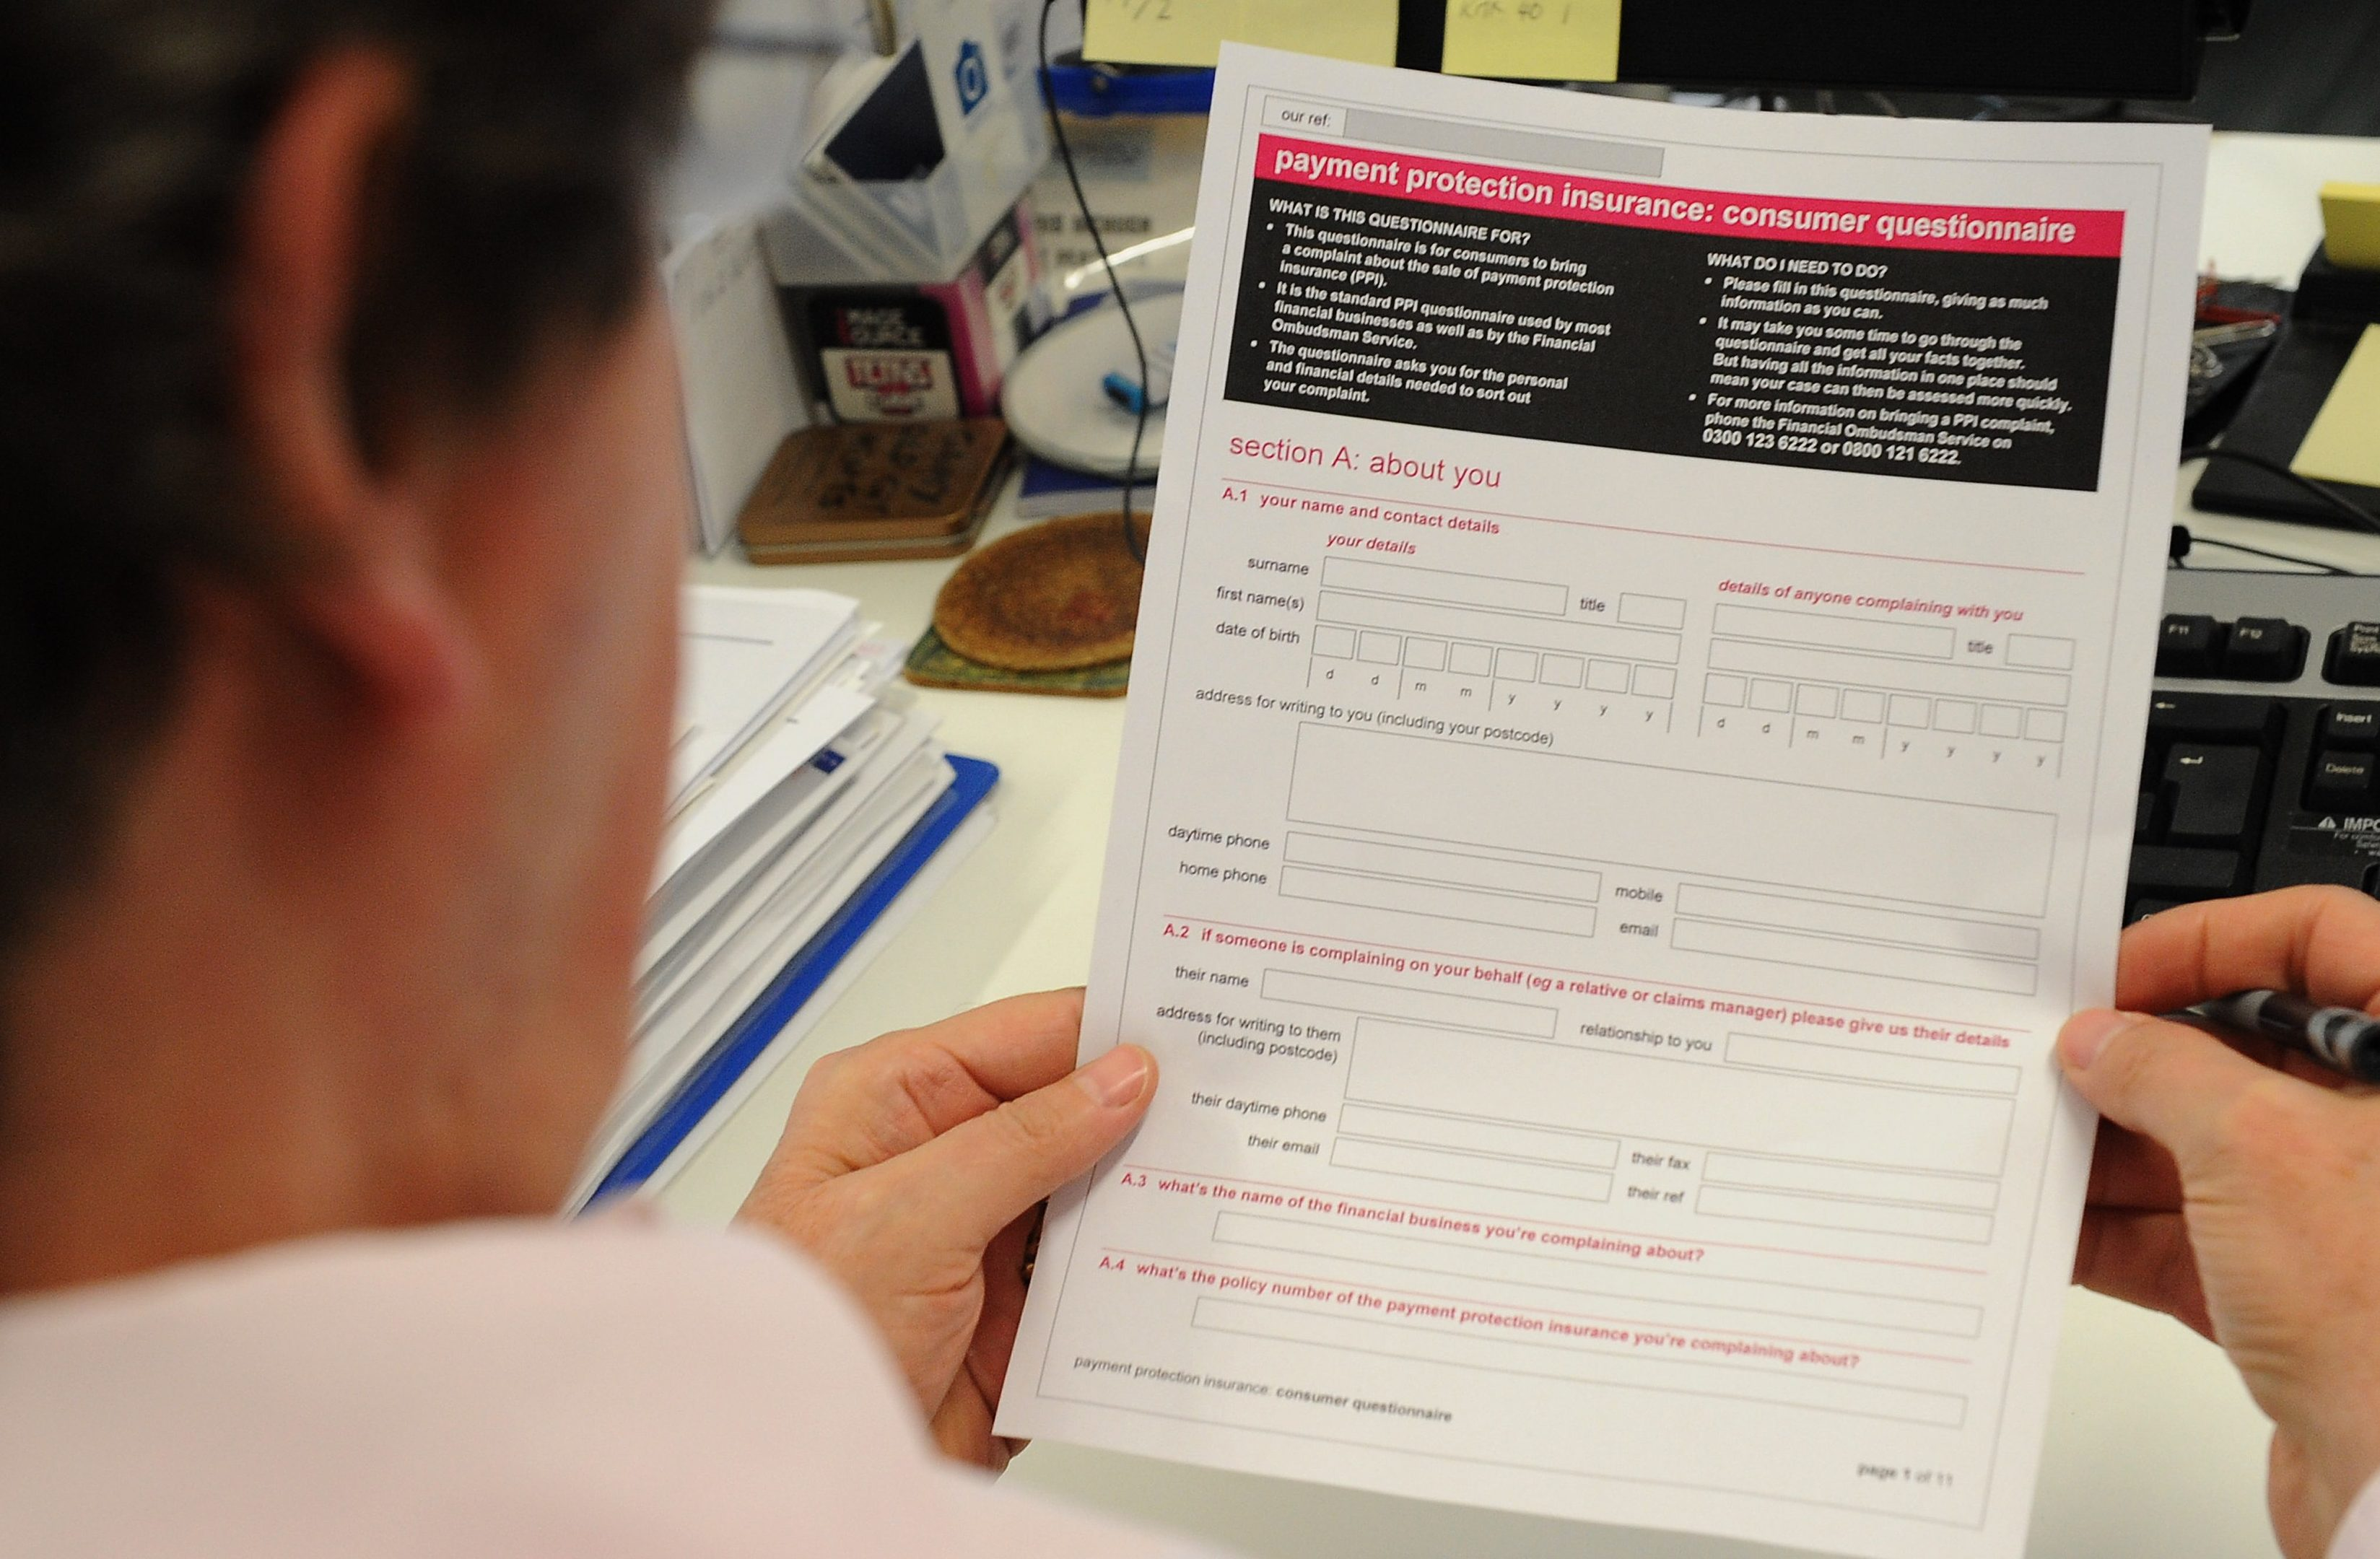 Man looking at a Payment Protection Insurance (PPI) claim form.